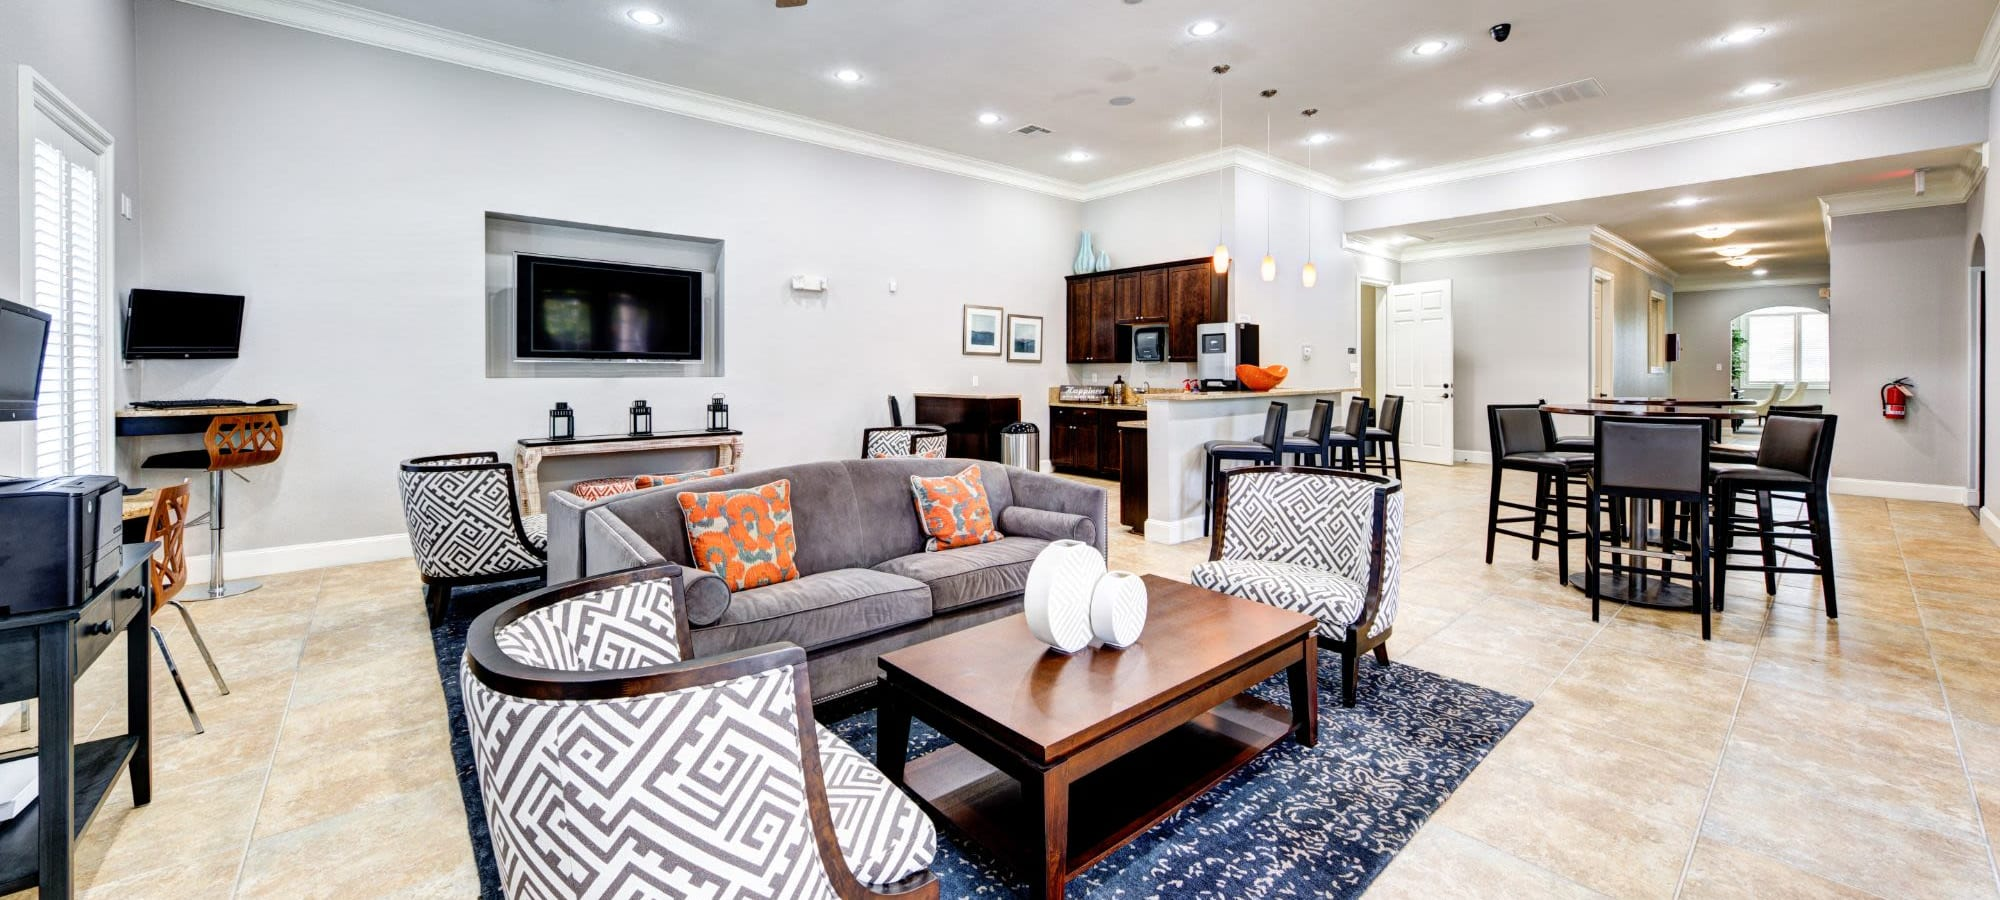 Schedule a tour of Marquis at Silver Oaks in Grapevine, Texas